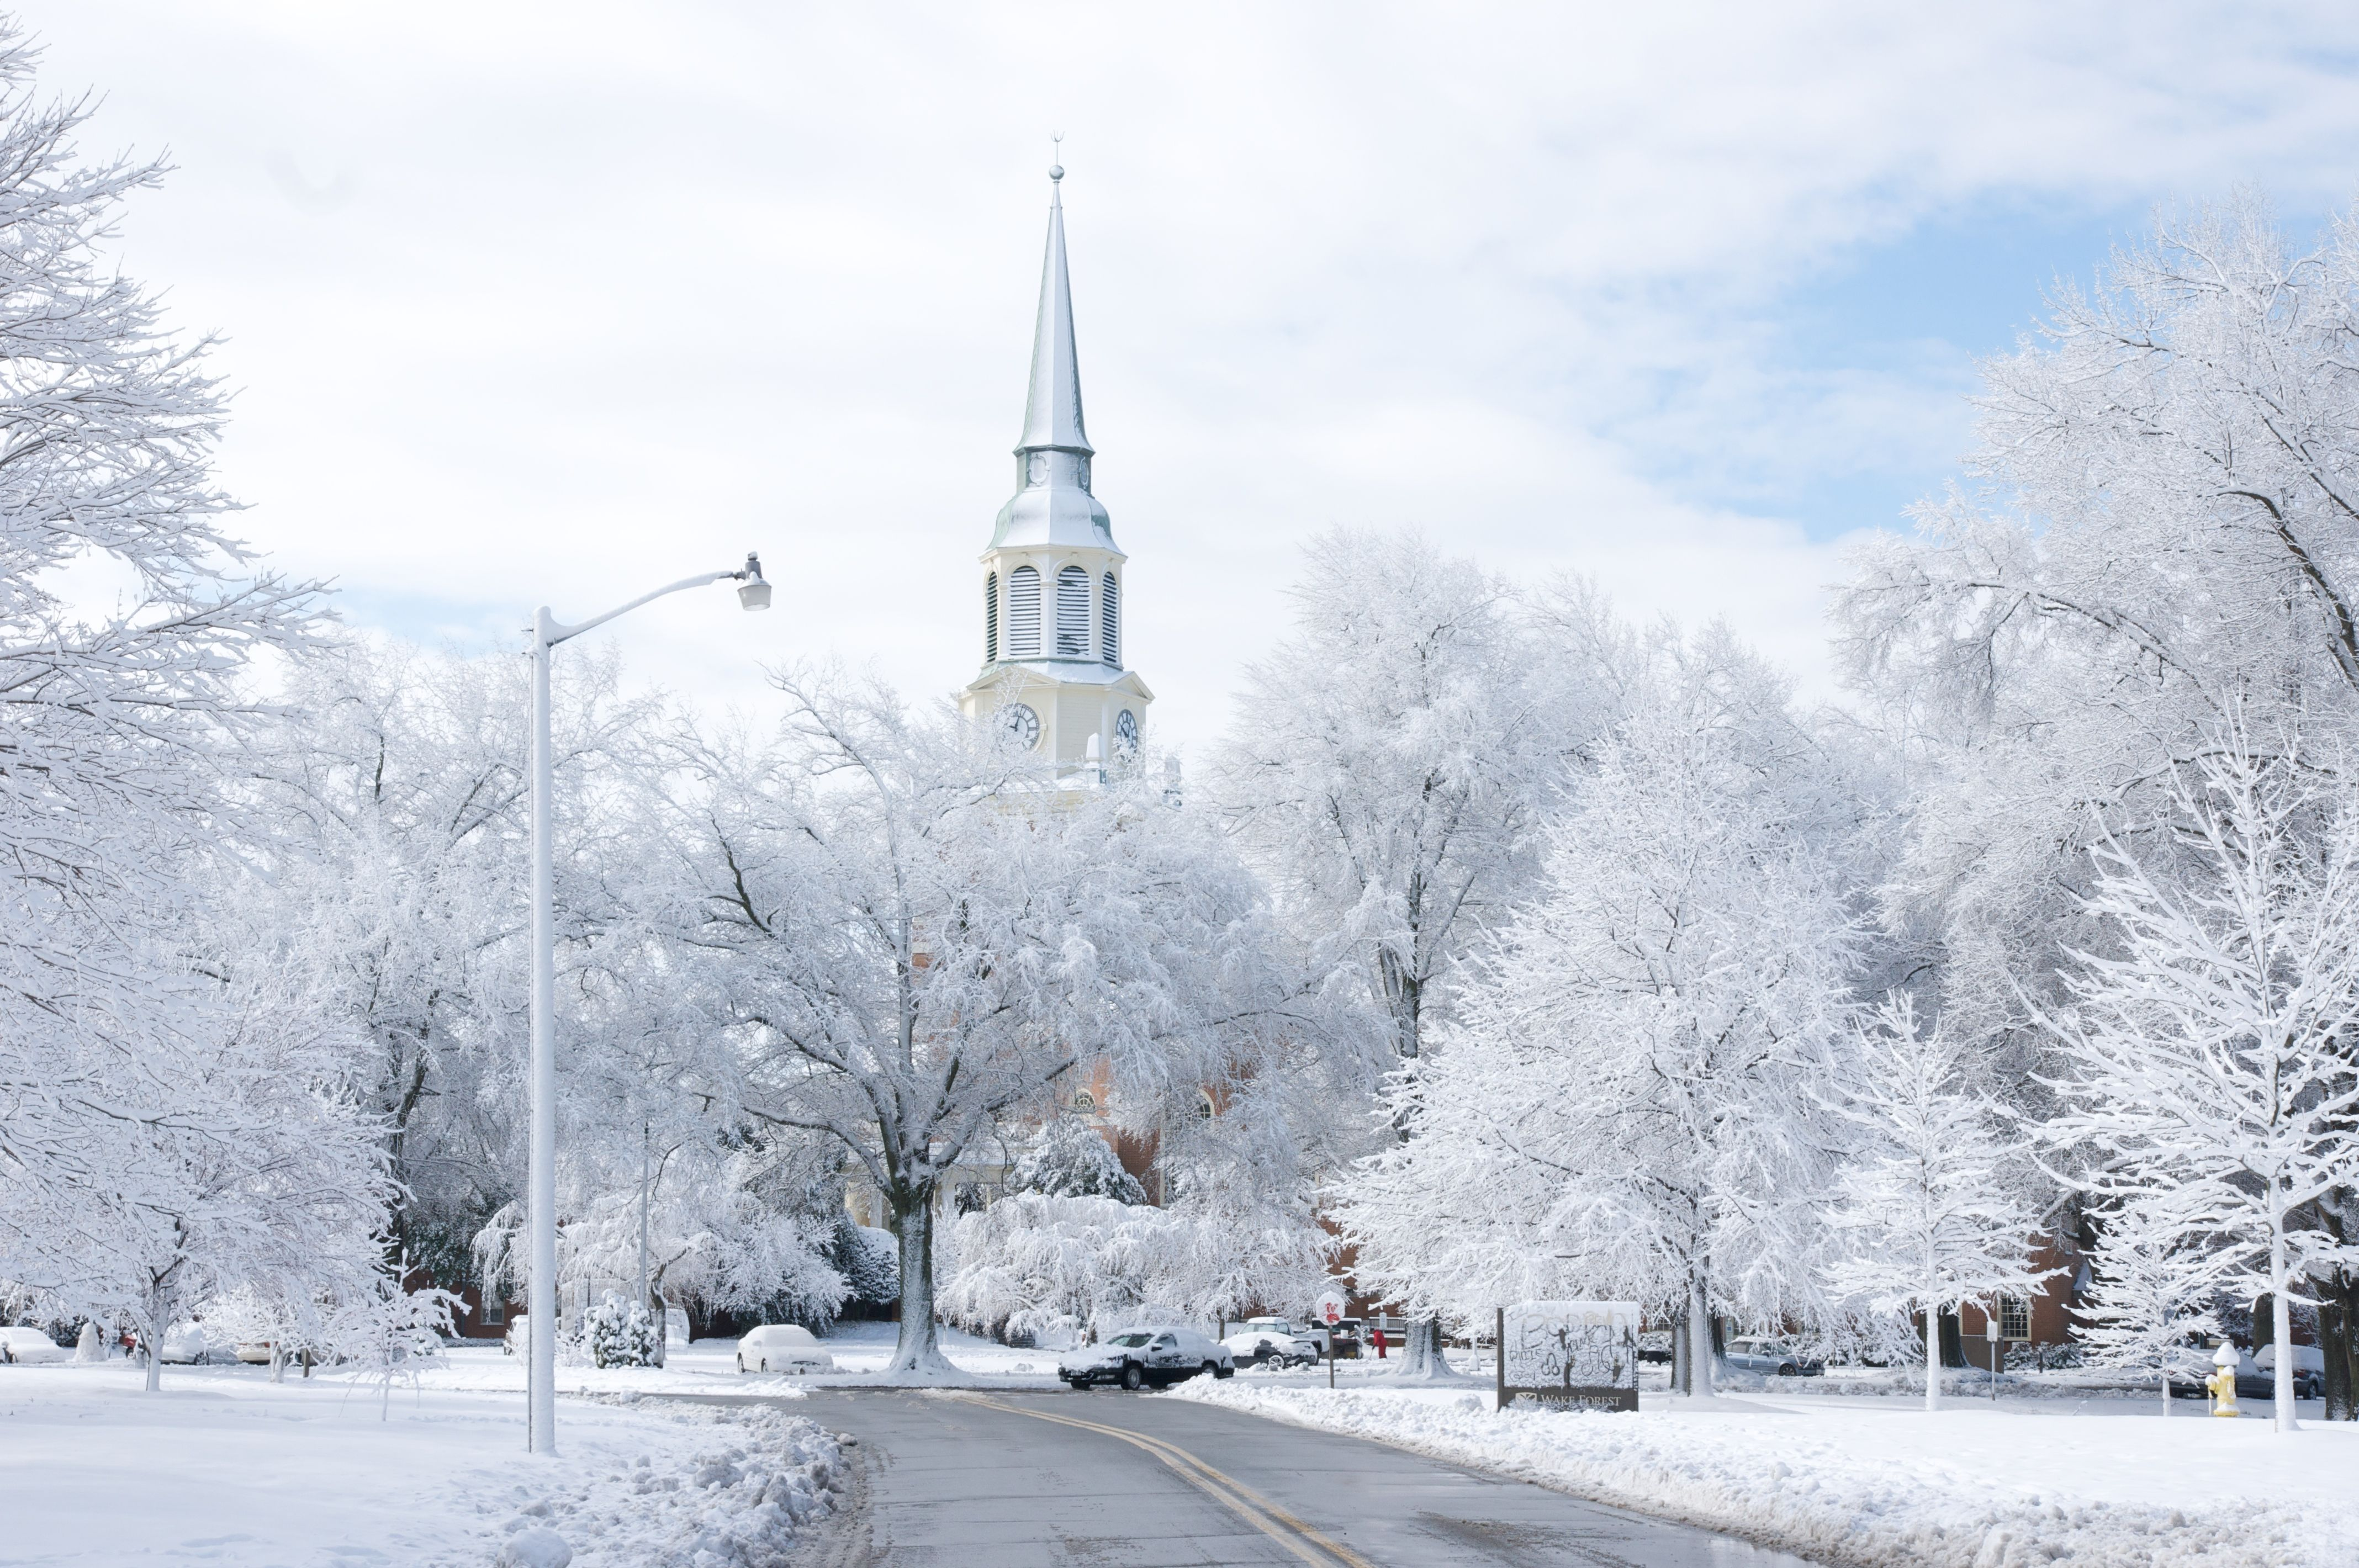 22 Places That Look Even More Magical Covered in Snow | Pinterest ...